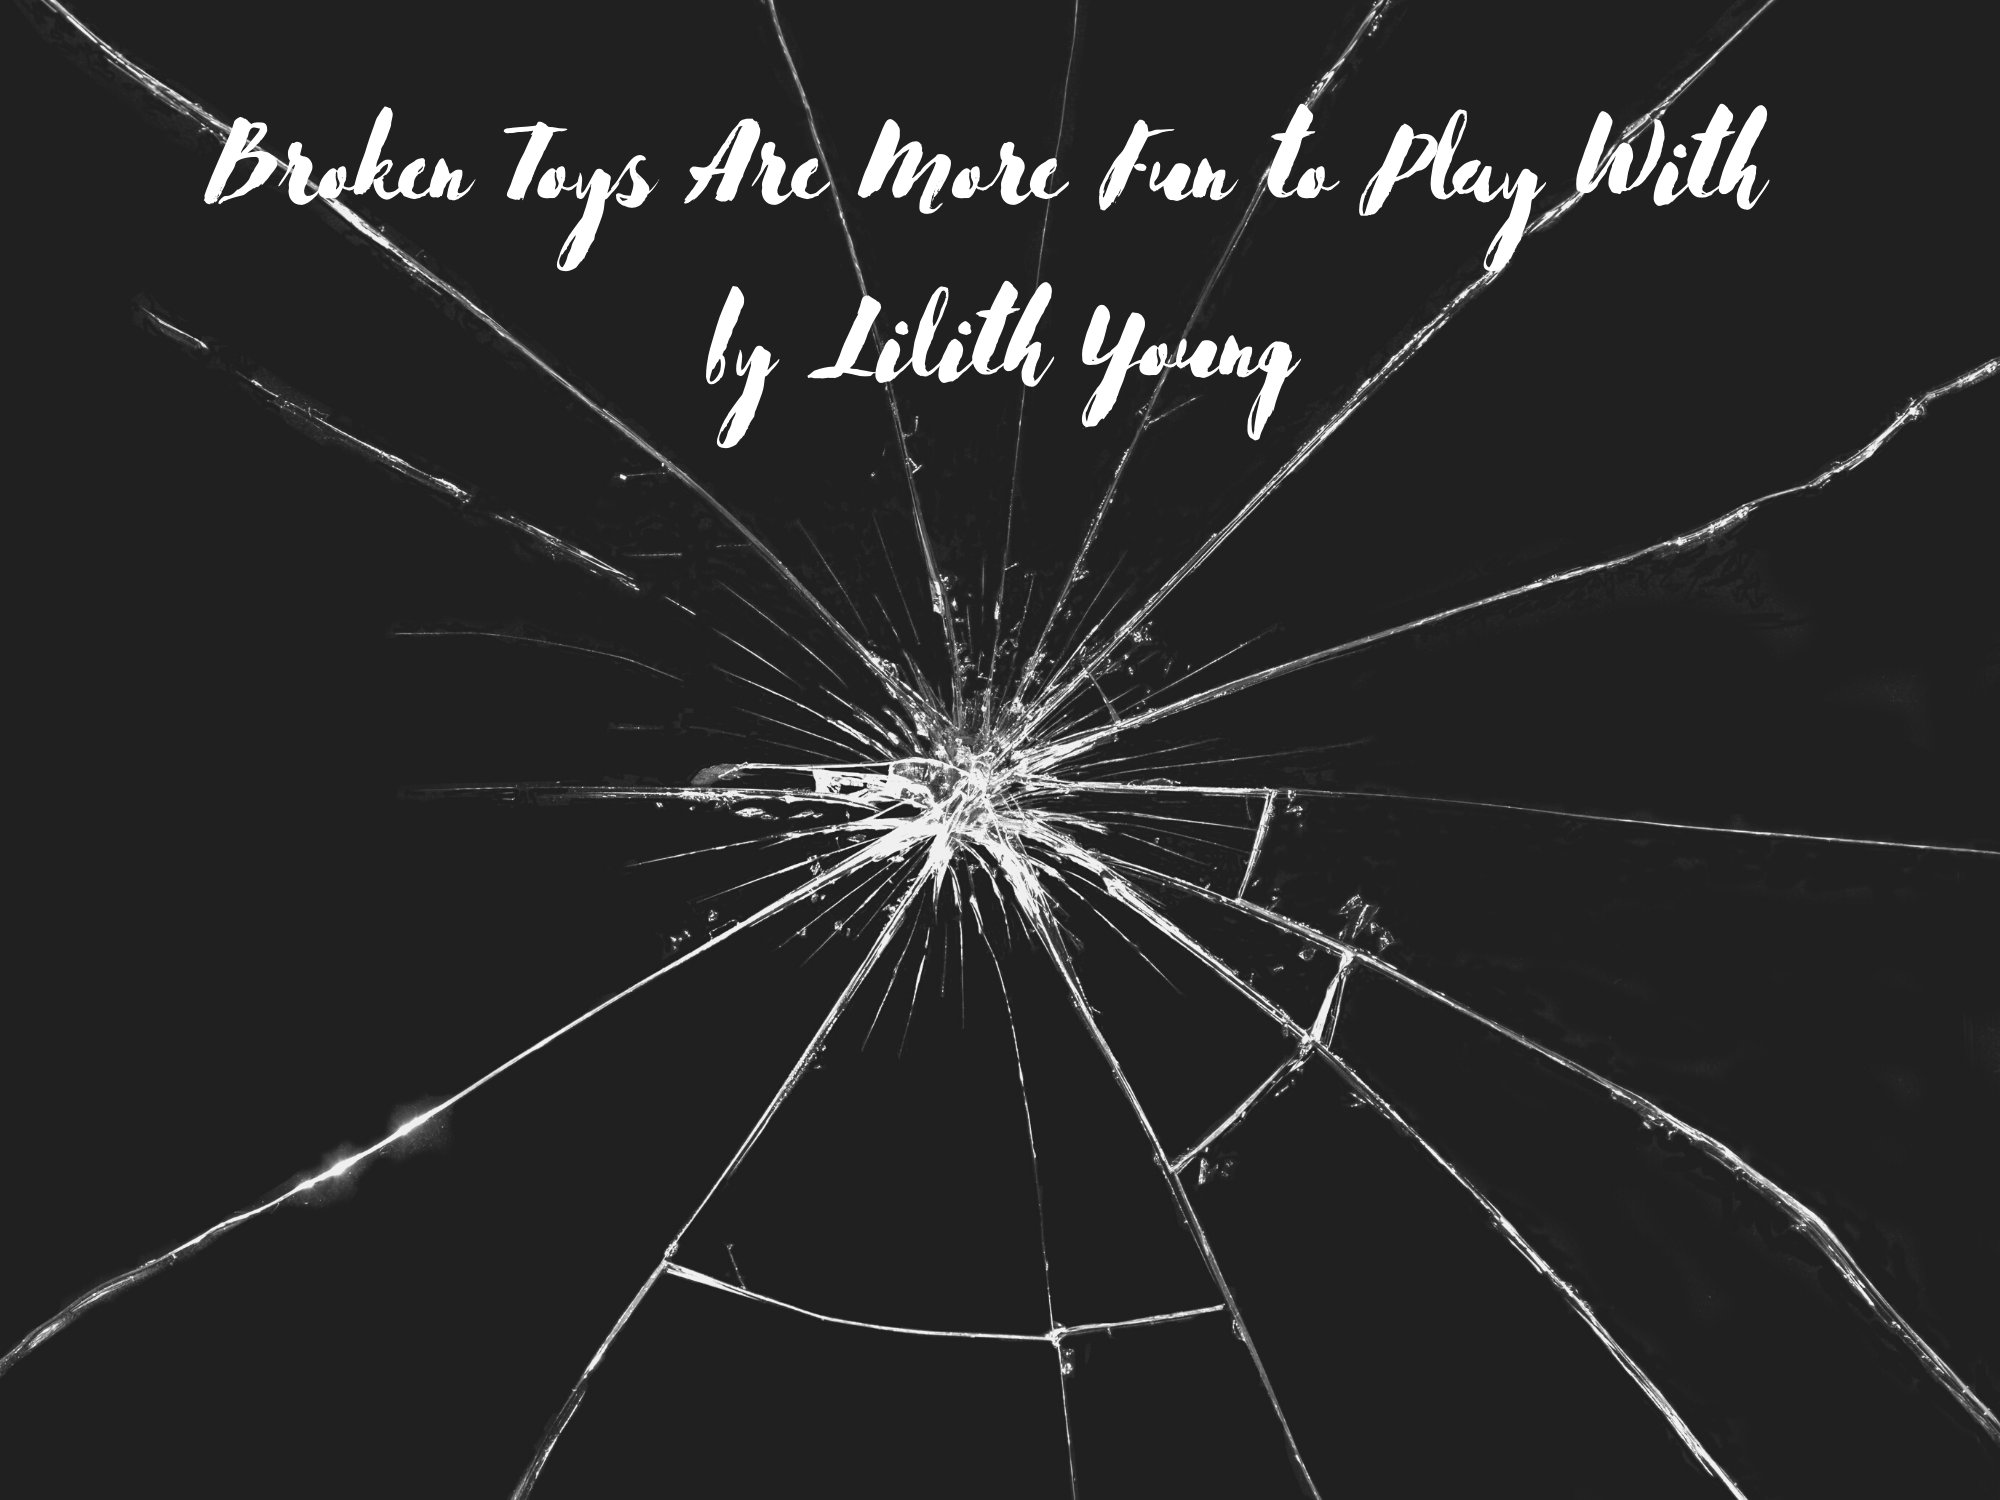 [Guest Blog] Broken Toys Are More Fun to Play With by Lilith Young